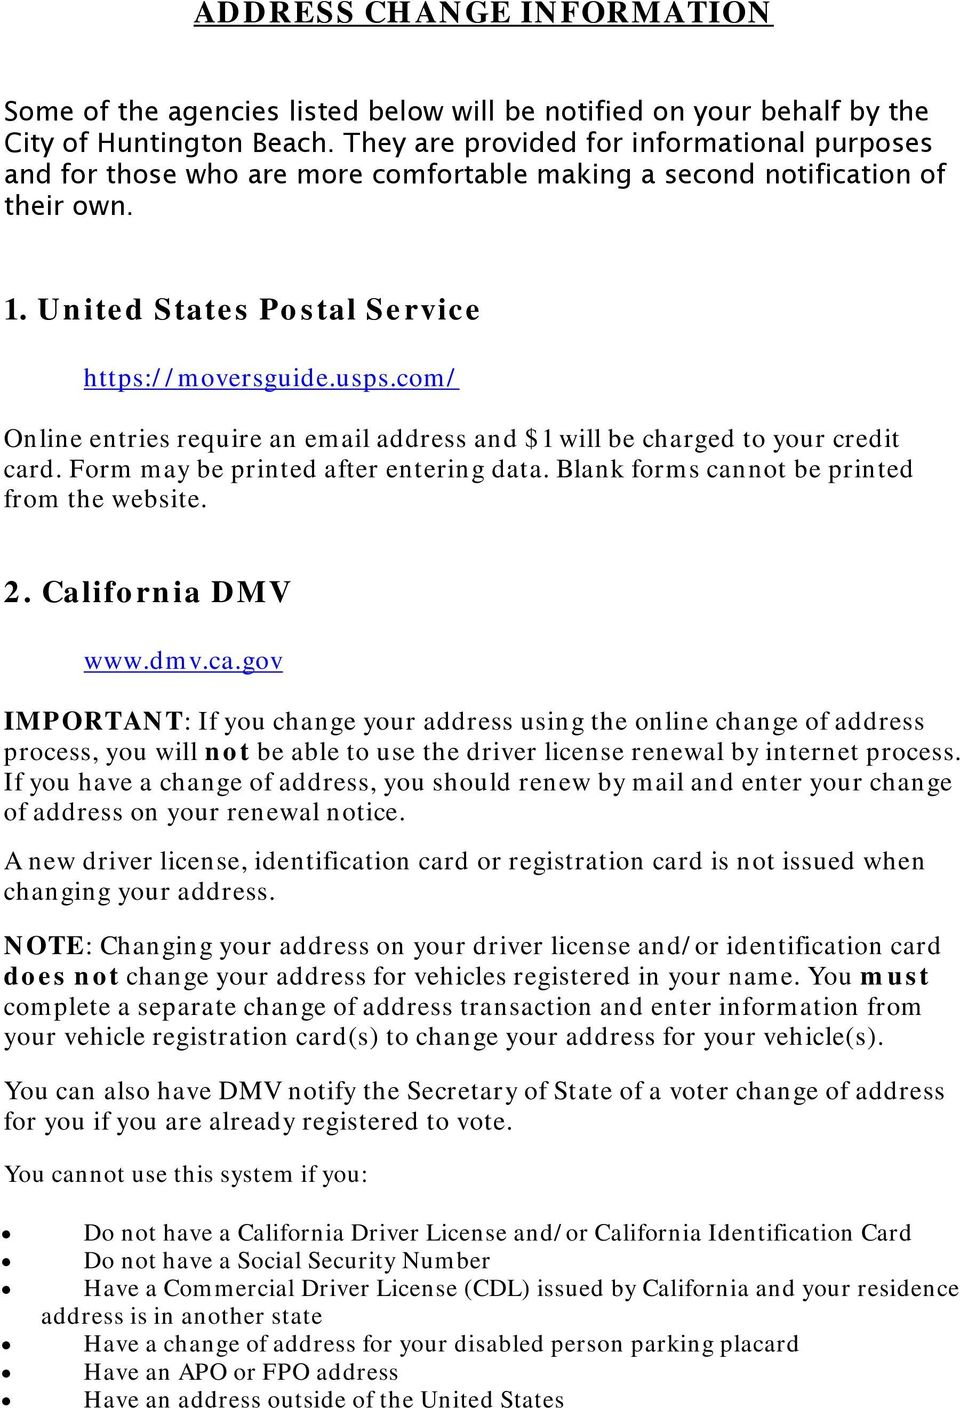 com/ Online entries require an email address and $1 will be charged to your credit card. Form may be printed after entering data. Blank forms cannot be printed from the website. 2. California DMV www.